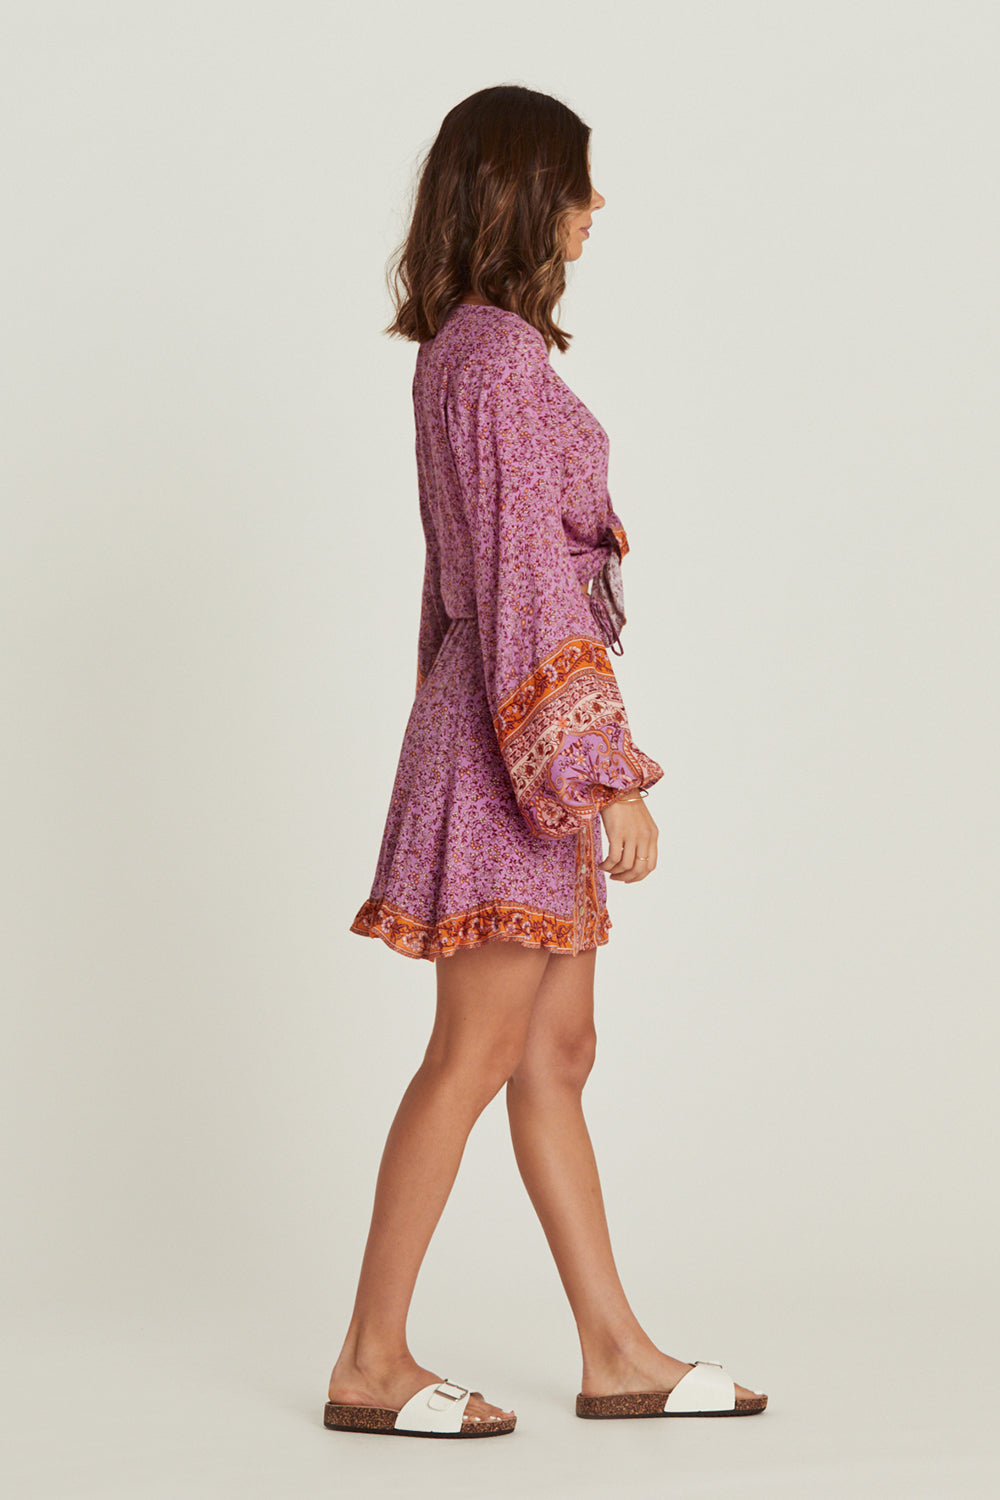 Island Mini Skirt in Amethyst